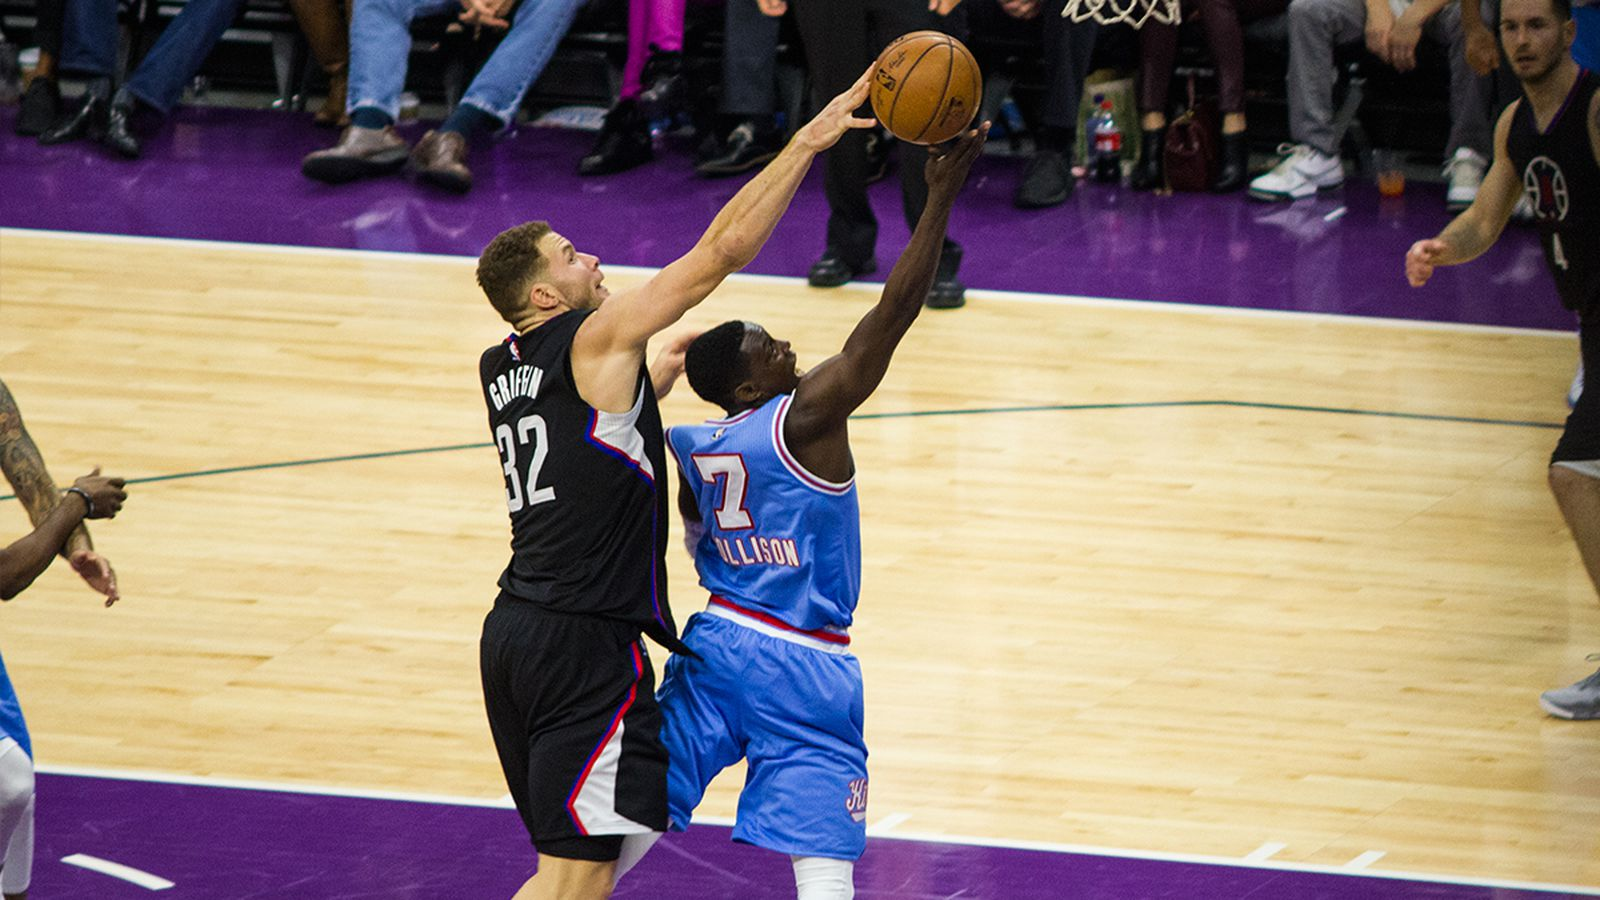 Blakegriffin_2_vs_clippers.0